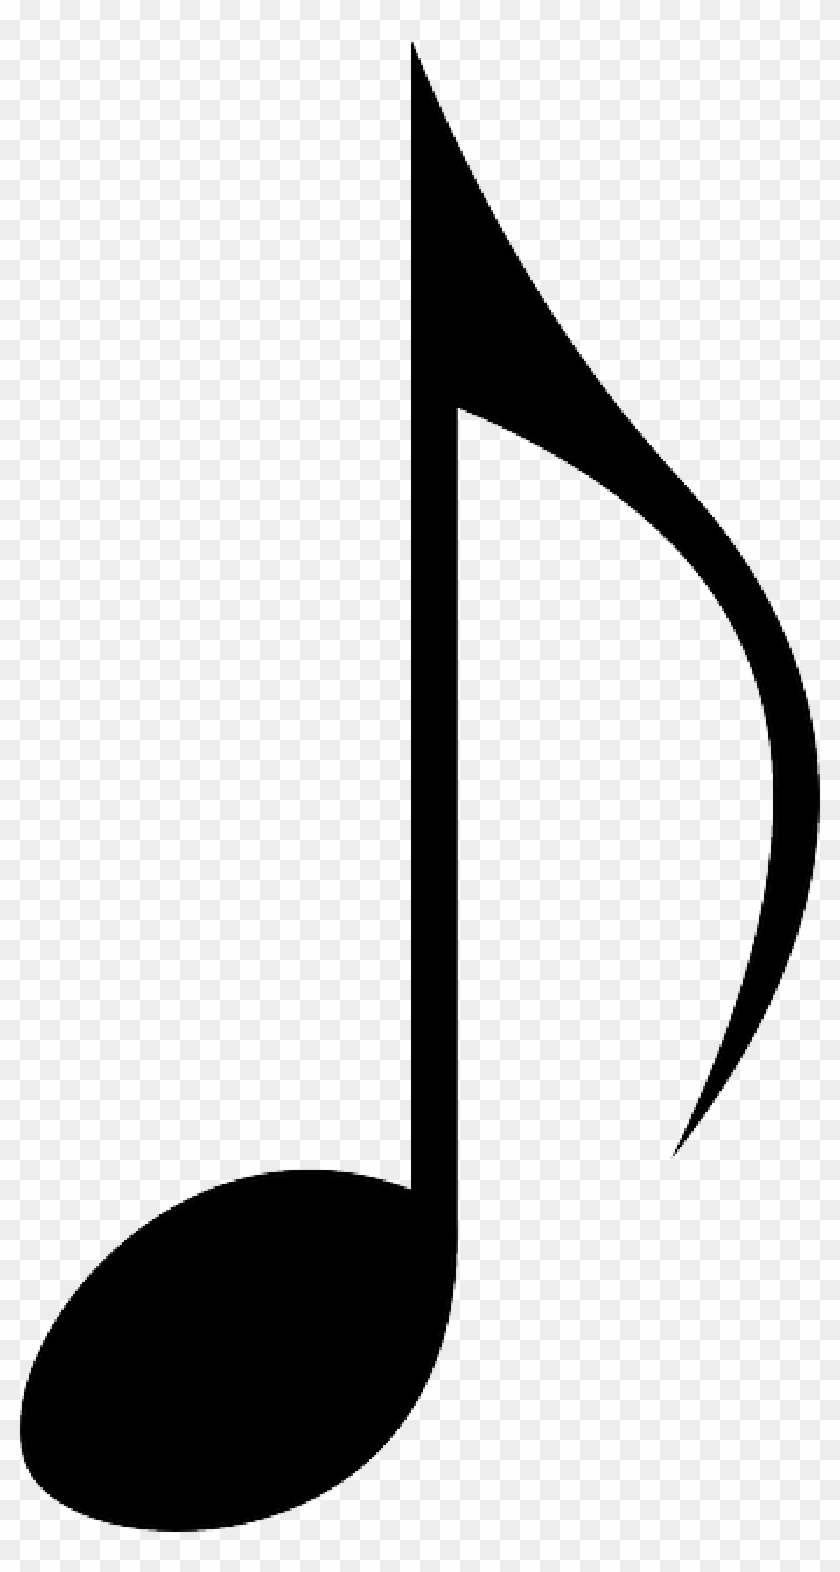 Music Notes Clip Art This Is Awesome - Music Note #8875